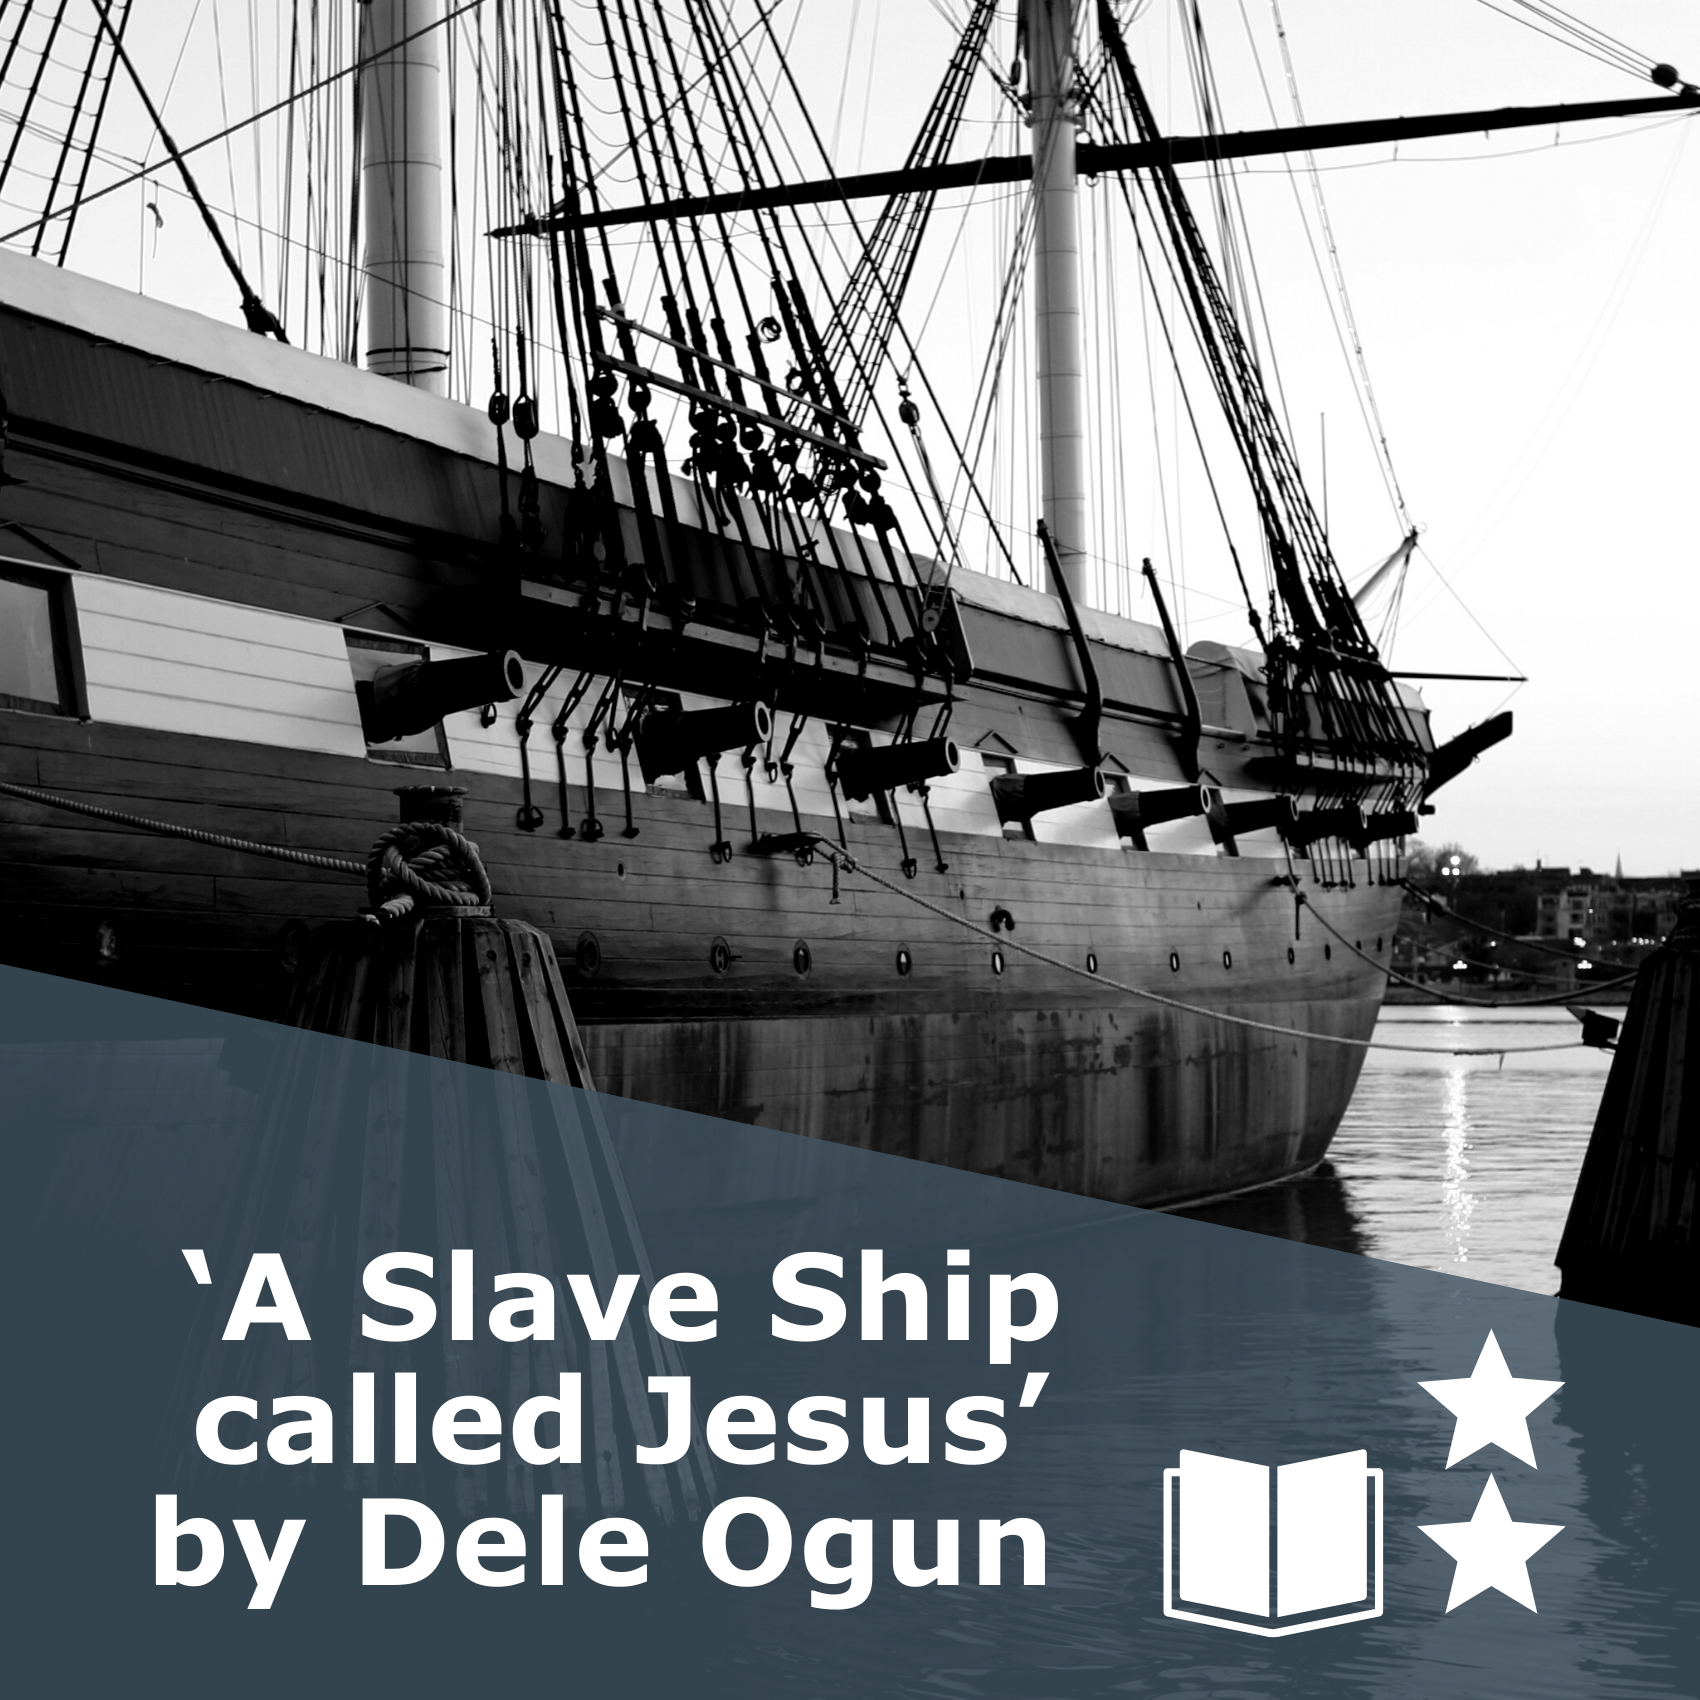 Picture of a ship in black and white. Title 'A Slave Ship called Jesus' by Dele Ogun. It is a book rated 2 stars